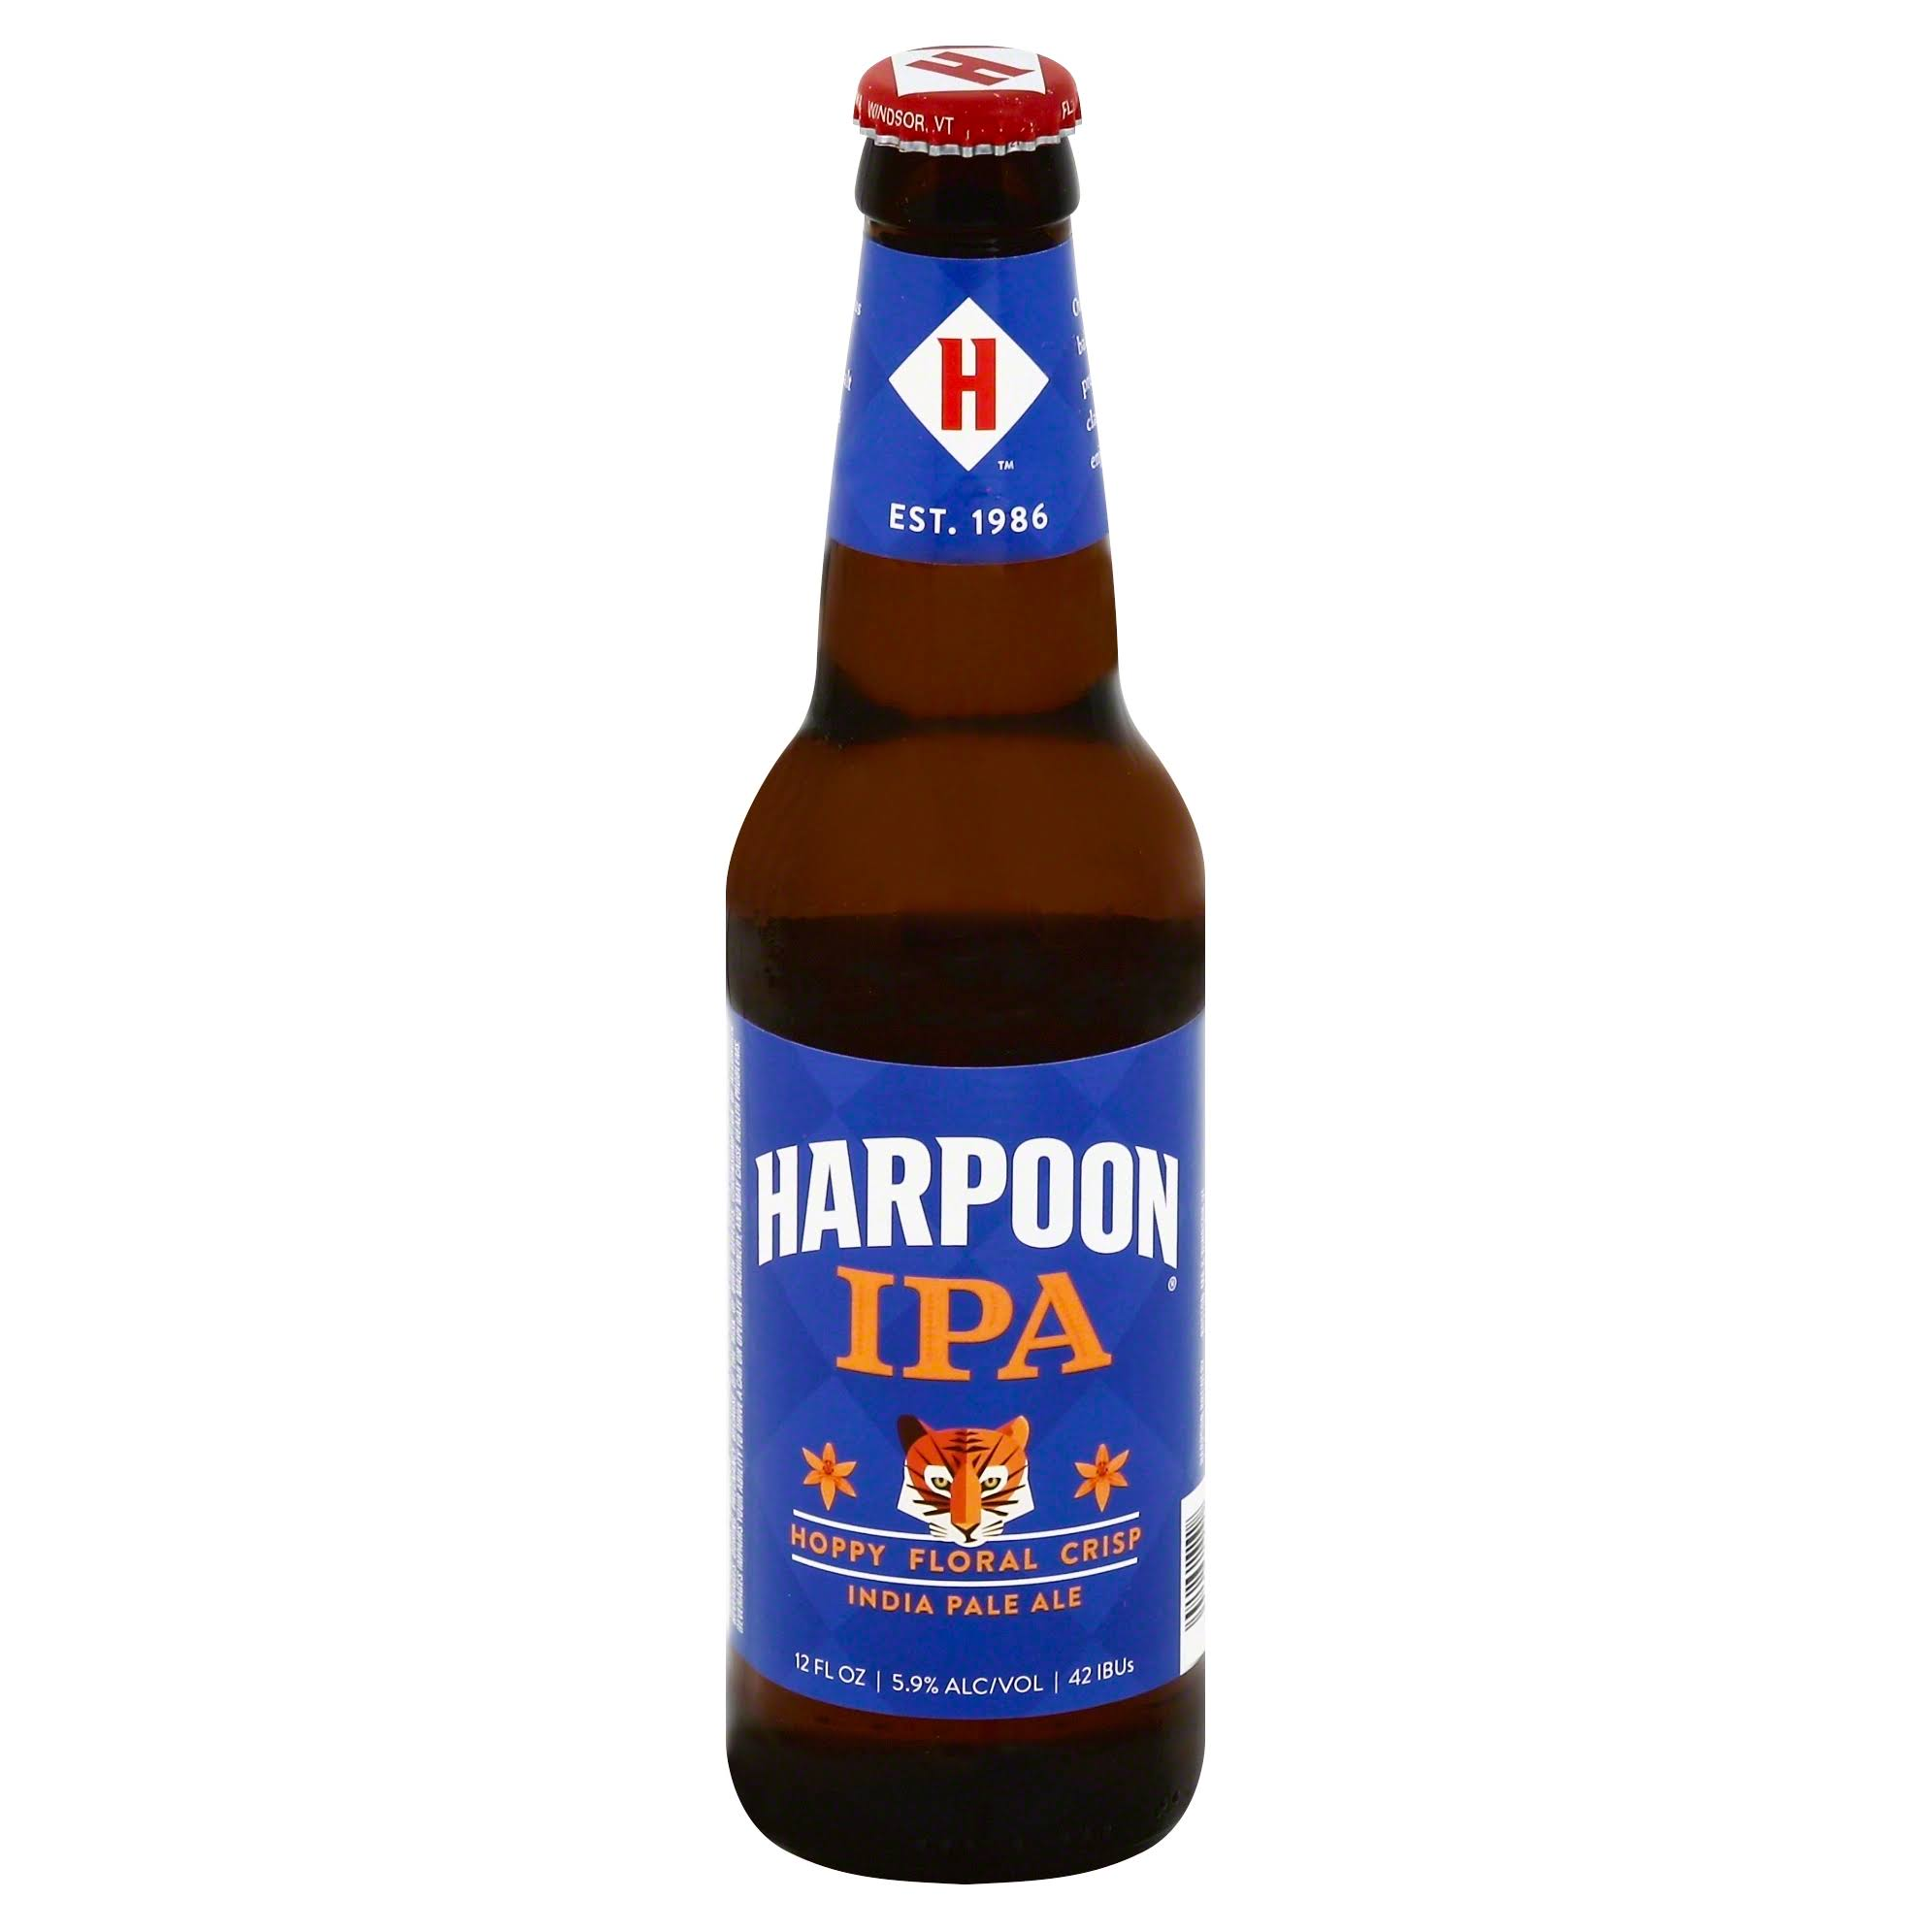 Harpoon India Pale Ale, Hoppy Floral Crisp - 12 fl oz